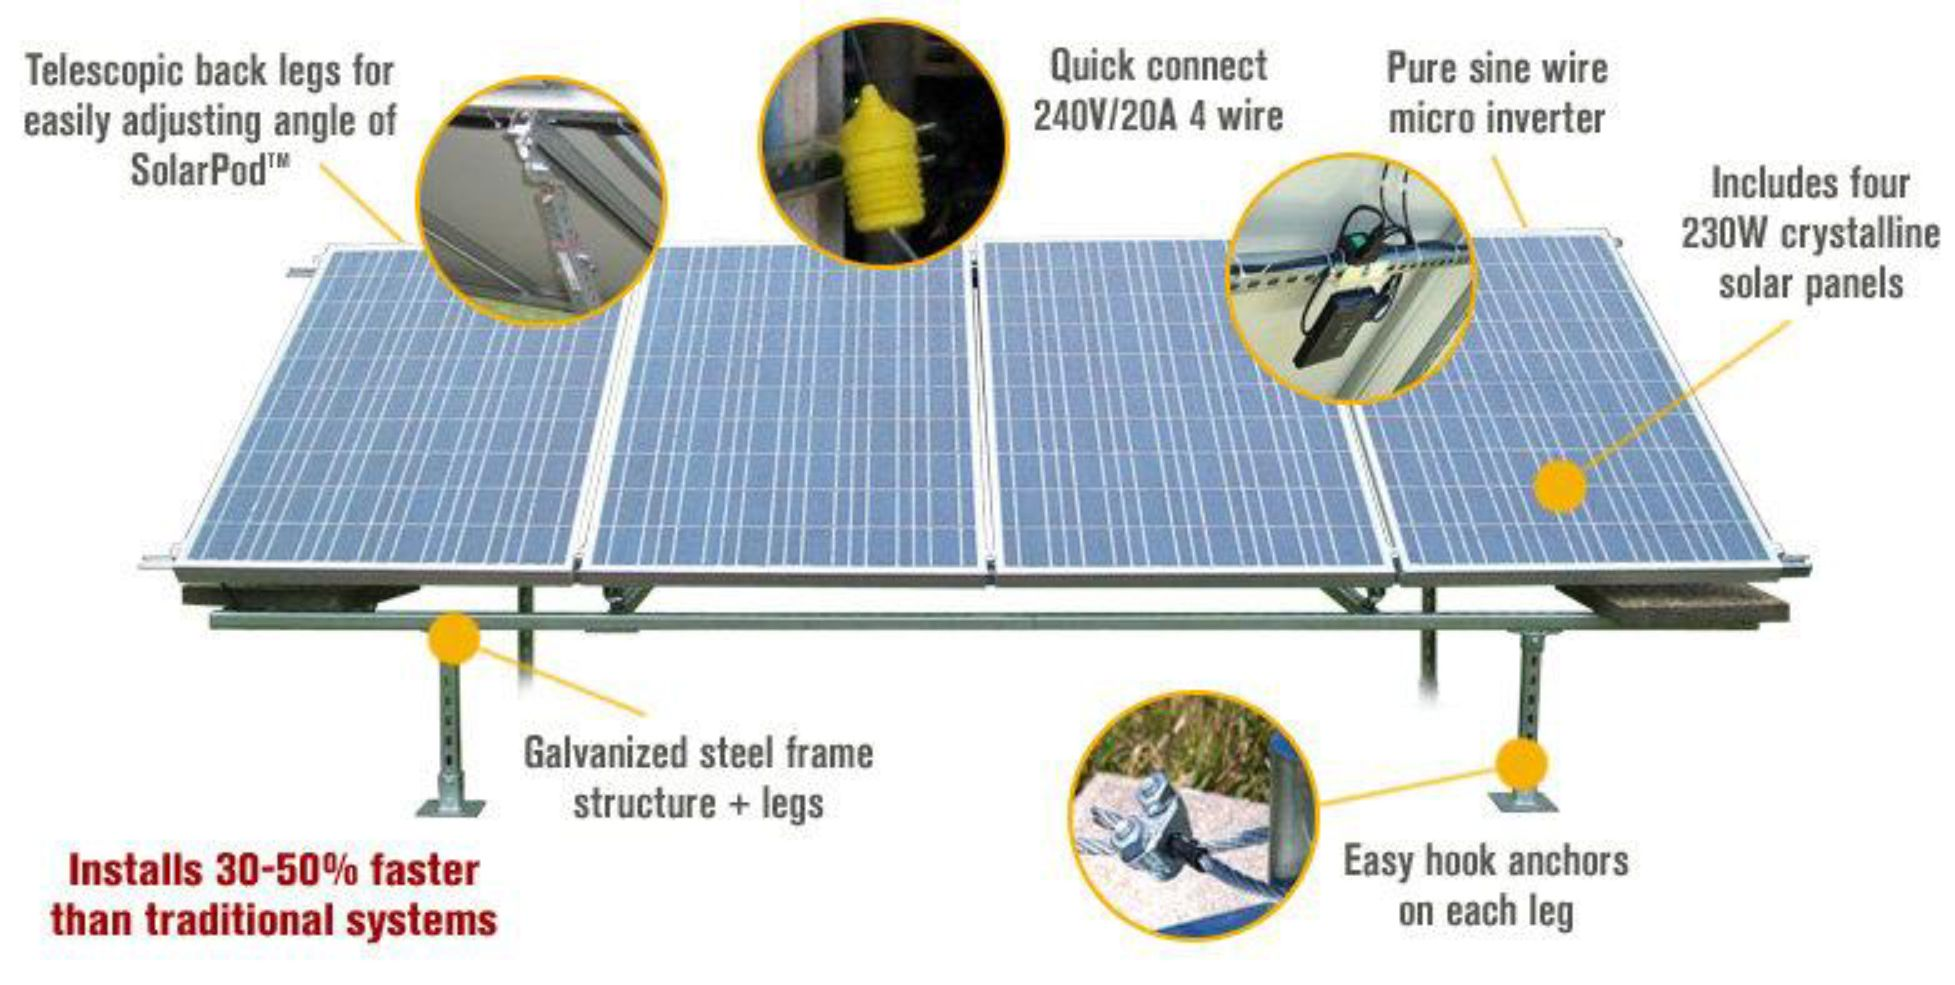 New Solar Panel Kit Could Make Solar Easier For Homeowners